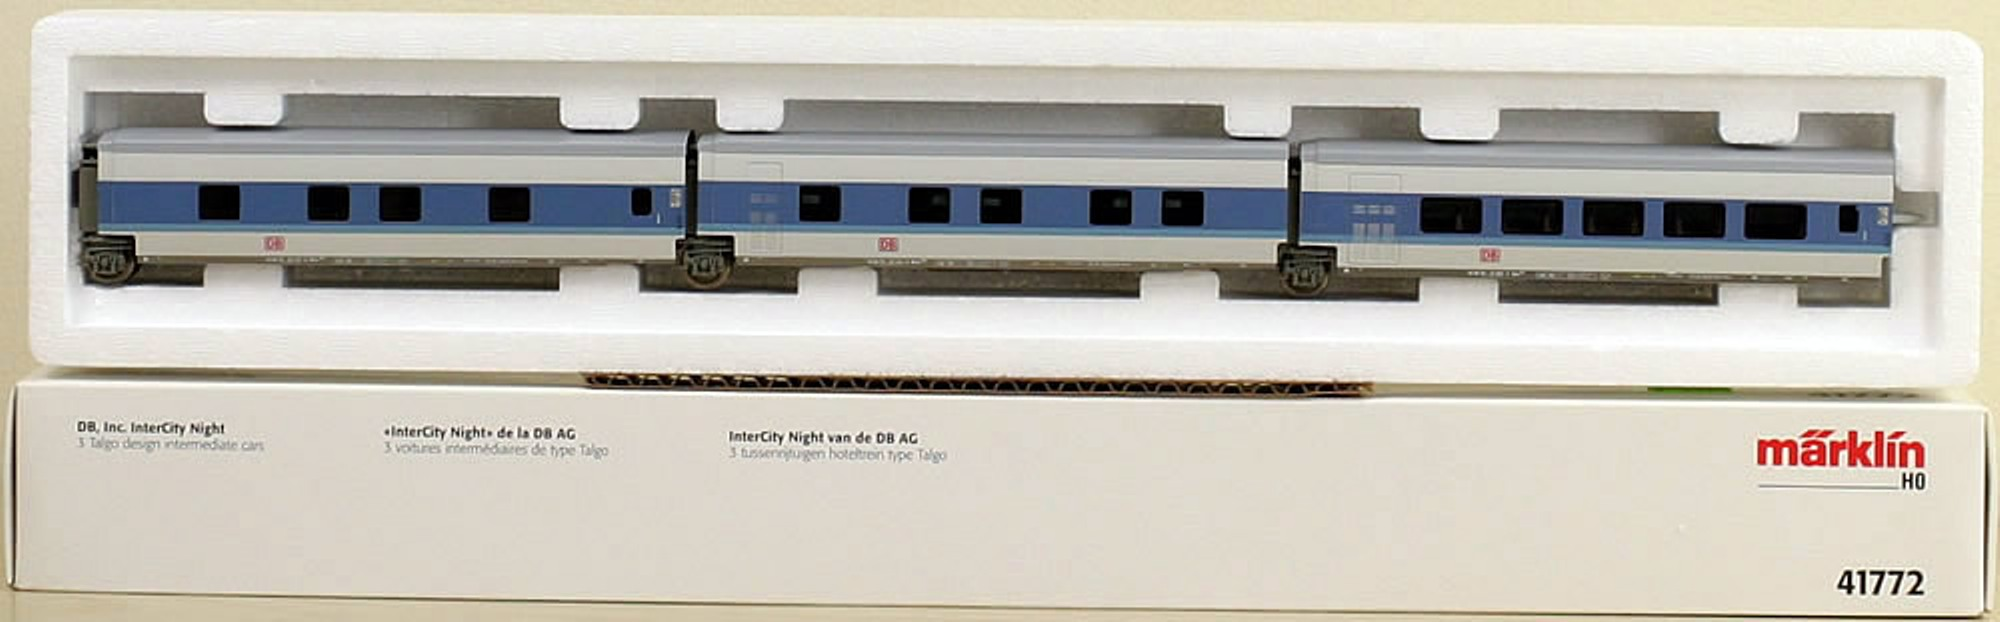 Maerklin 41772 - InterCityNight, Ergaenzung 3 Wagen